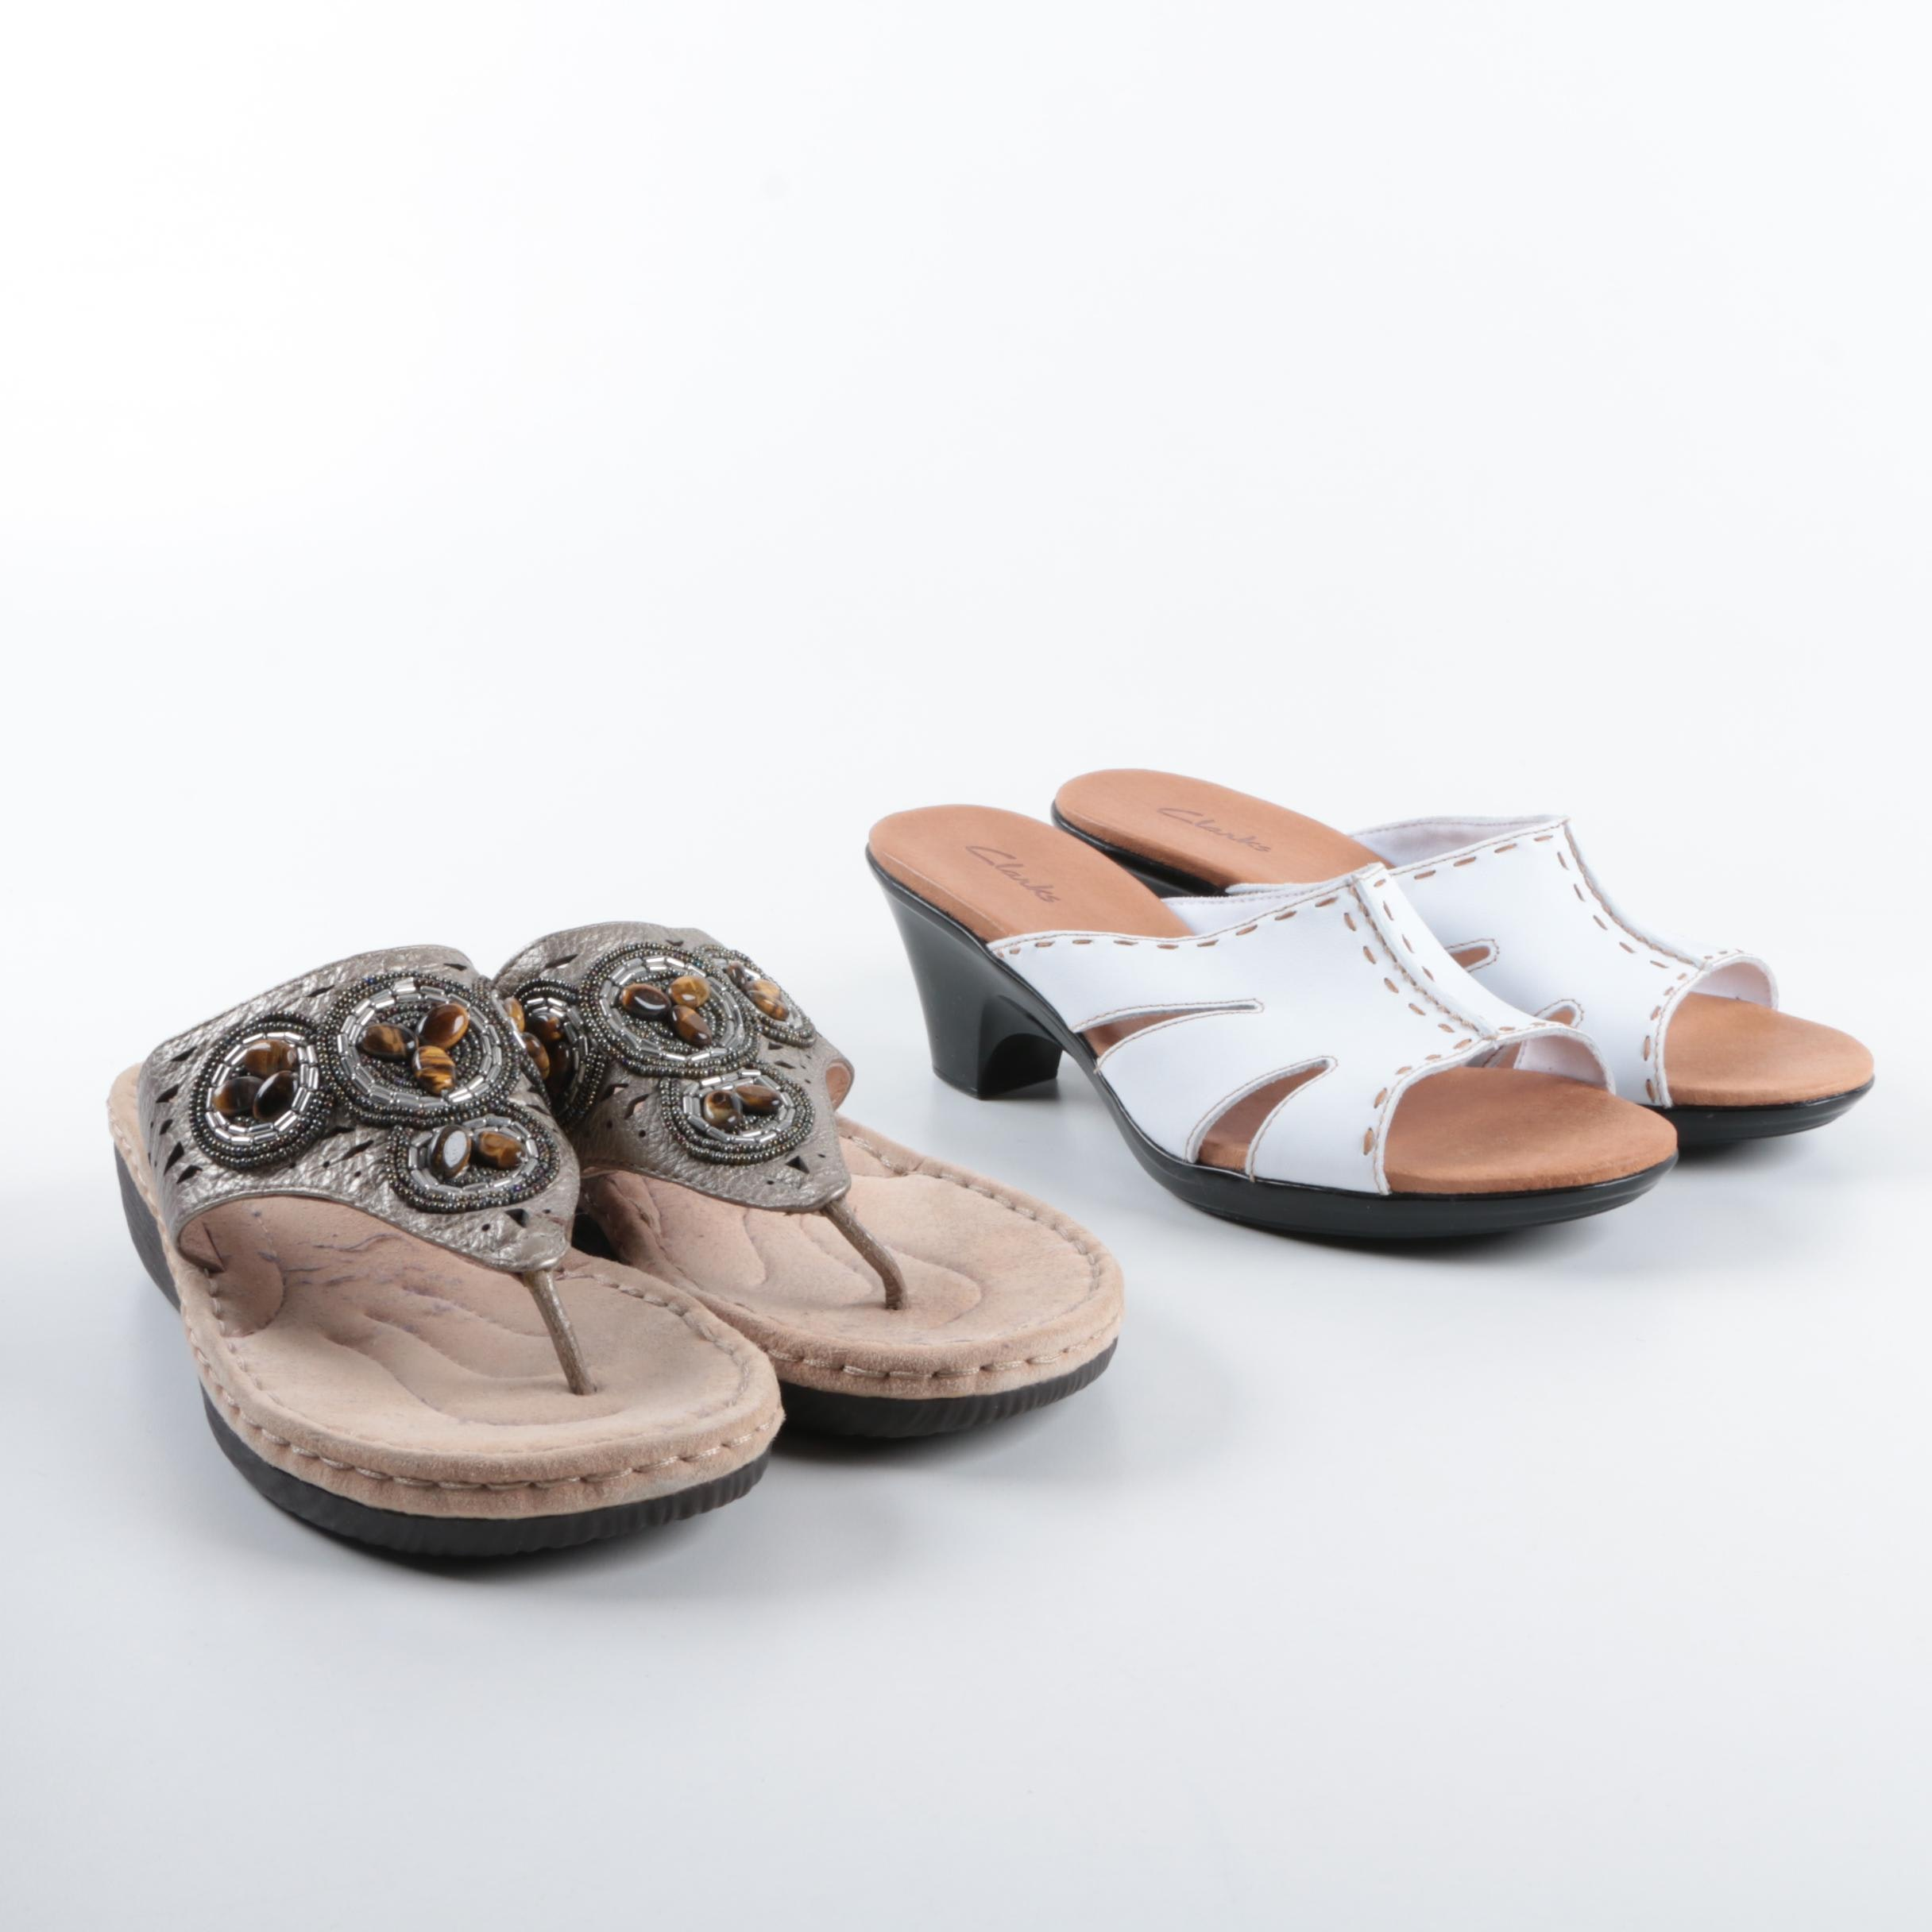 Women's Clarks Artisan Beaded Thong Sandals and Clarks White Slide Sandals